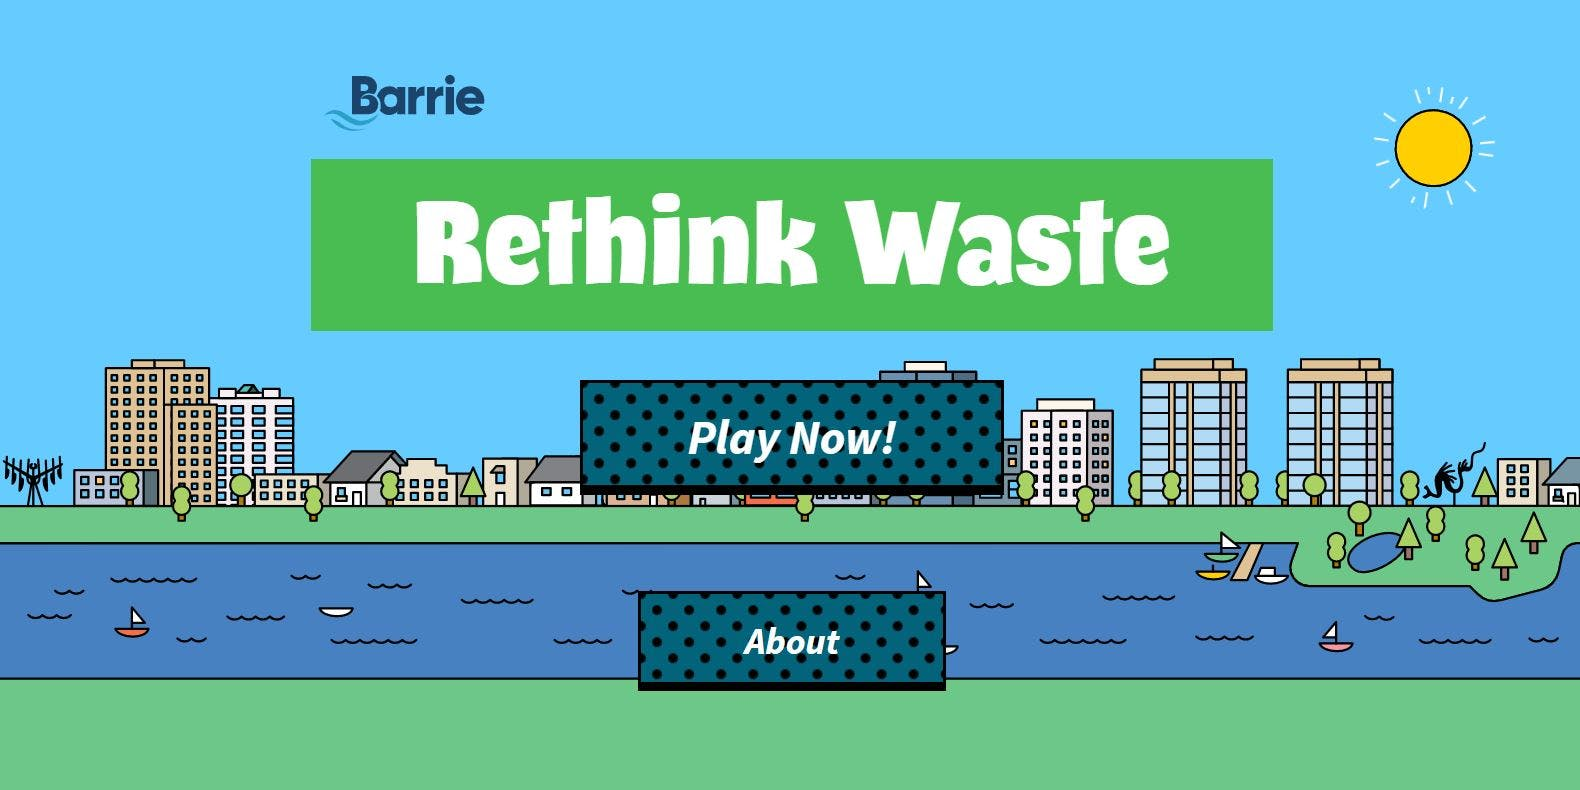 Learn about The City of Barrie's waste diversion programs in a fun way with our brand new Rethink Waste sorting game. Sort materials correctly and win fun items to build your own digital park! Note: does not apply to households outside of Barrie.